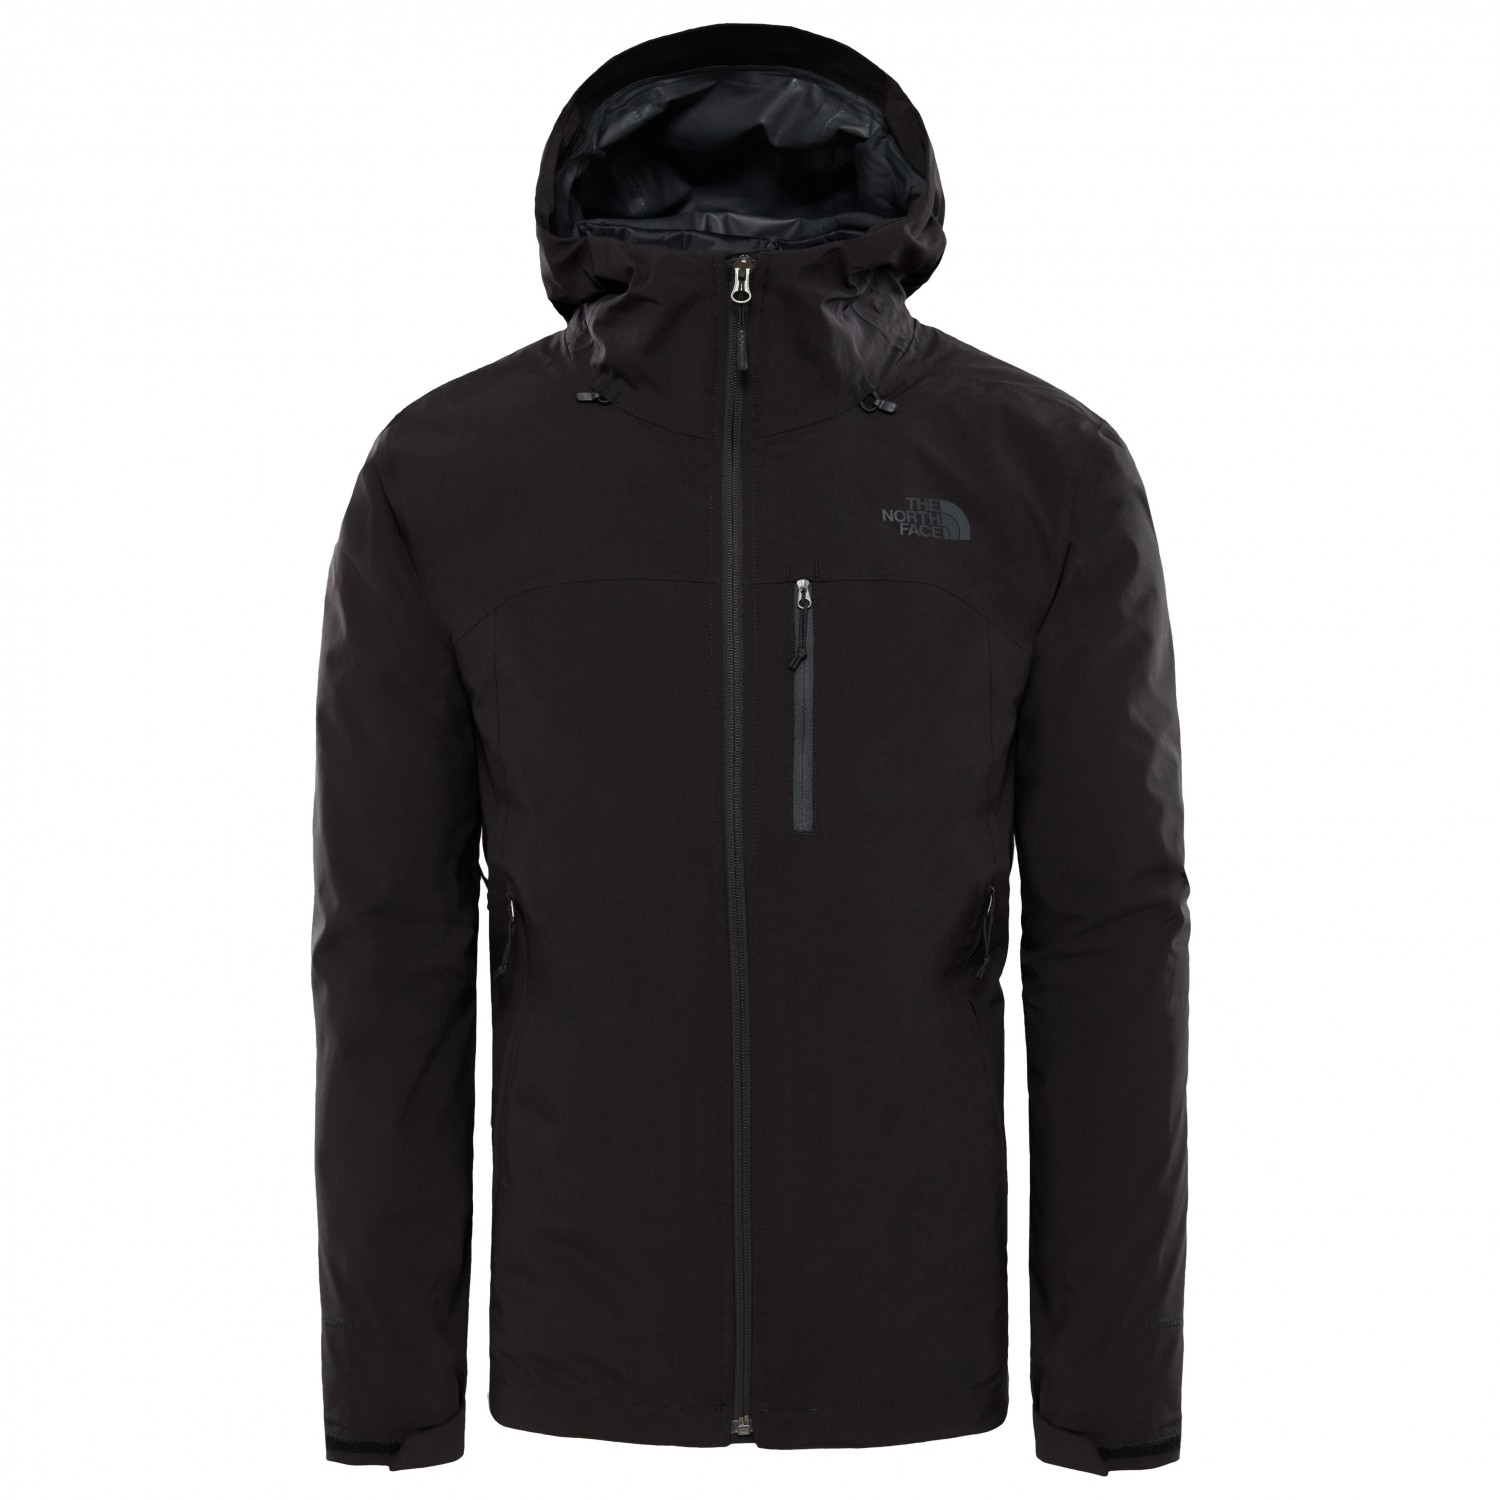 low priced a96b7 63498 free shipping the north face thermoball triclimate jacket ...